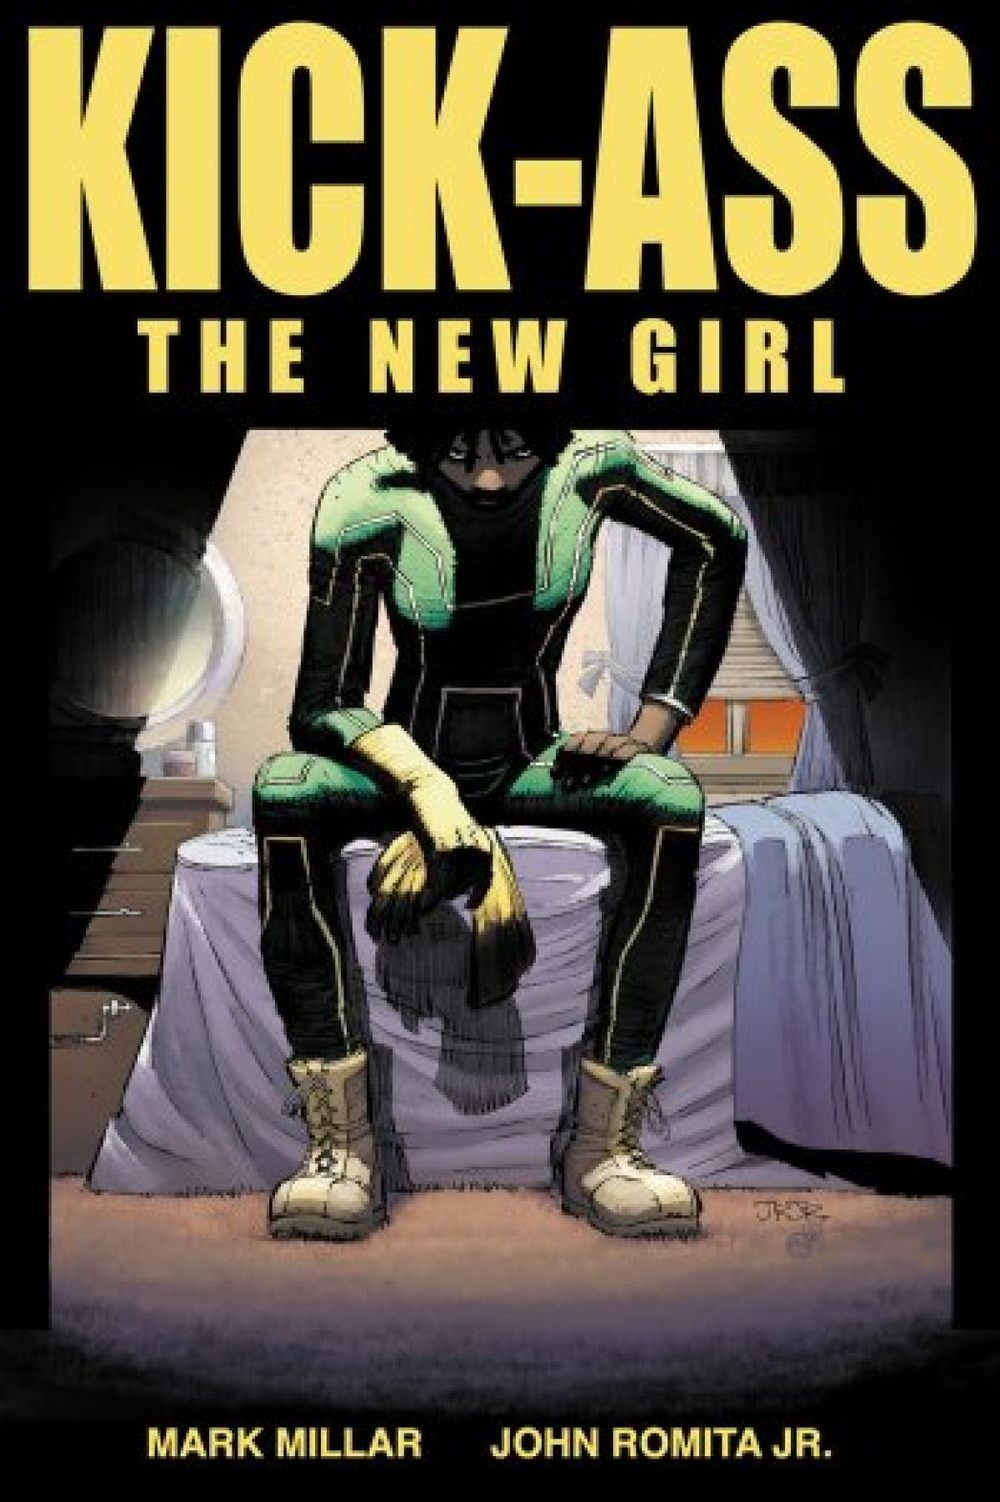 mark-millar-reveals-and-discusses-his-new-african-american-female-kick-ass